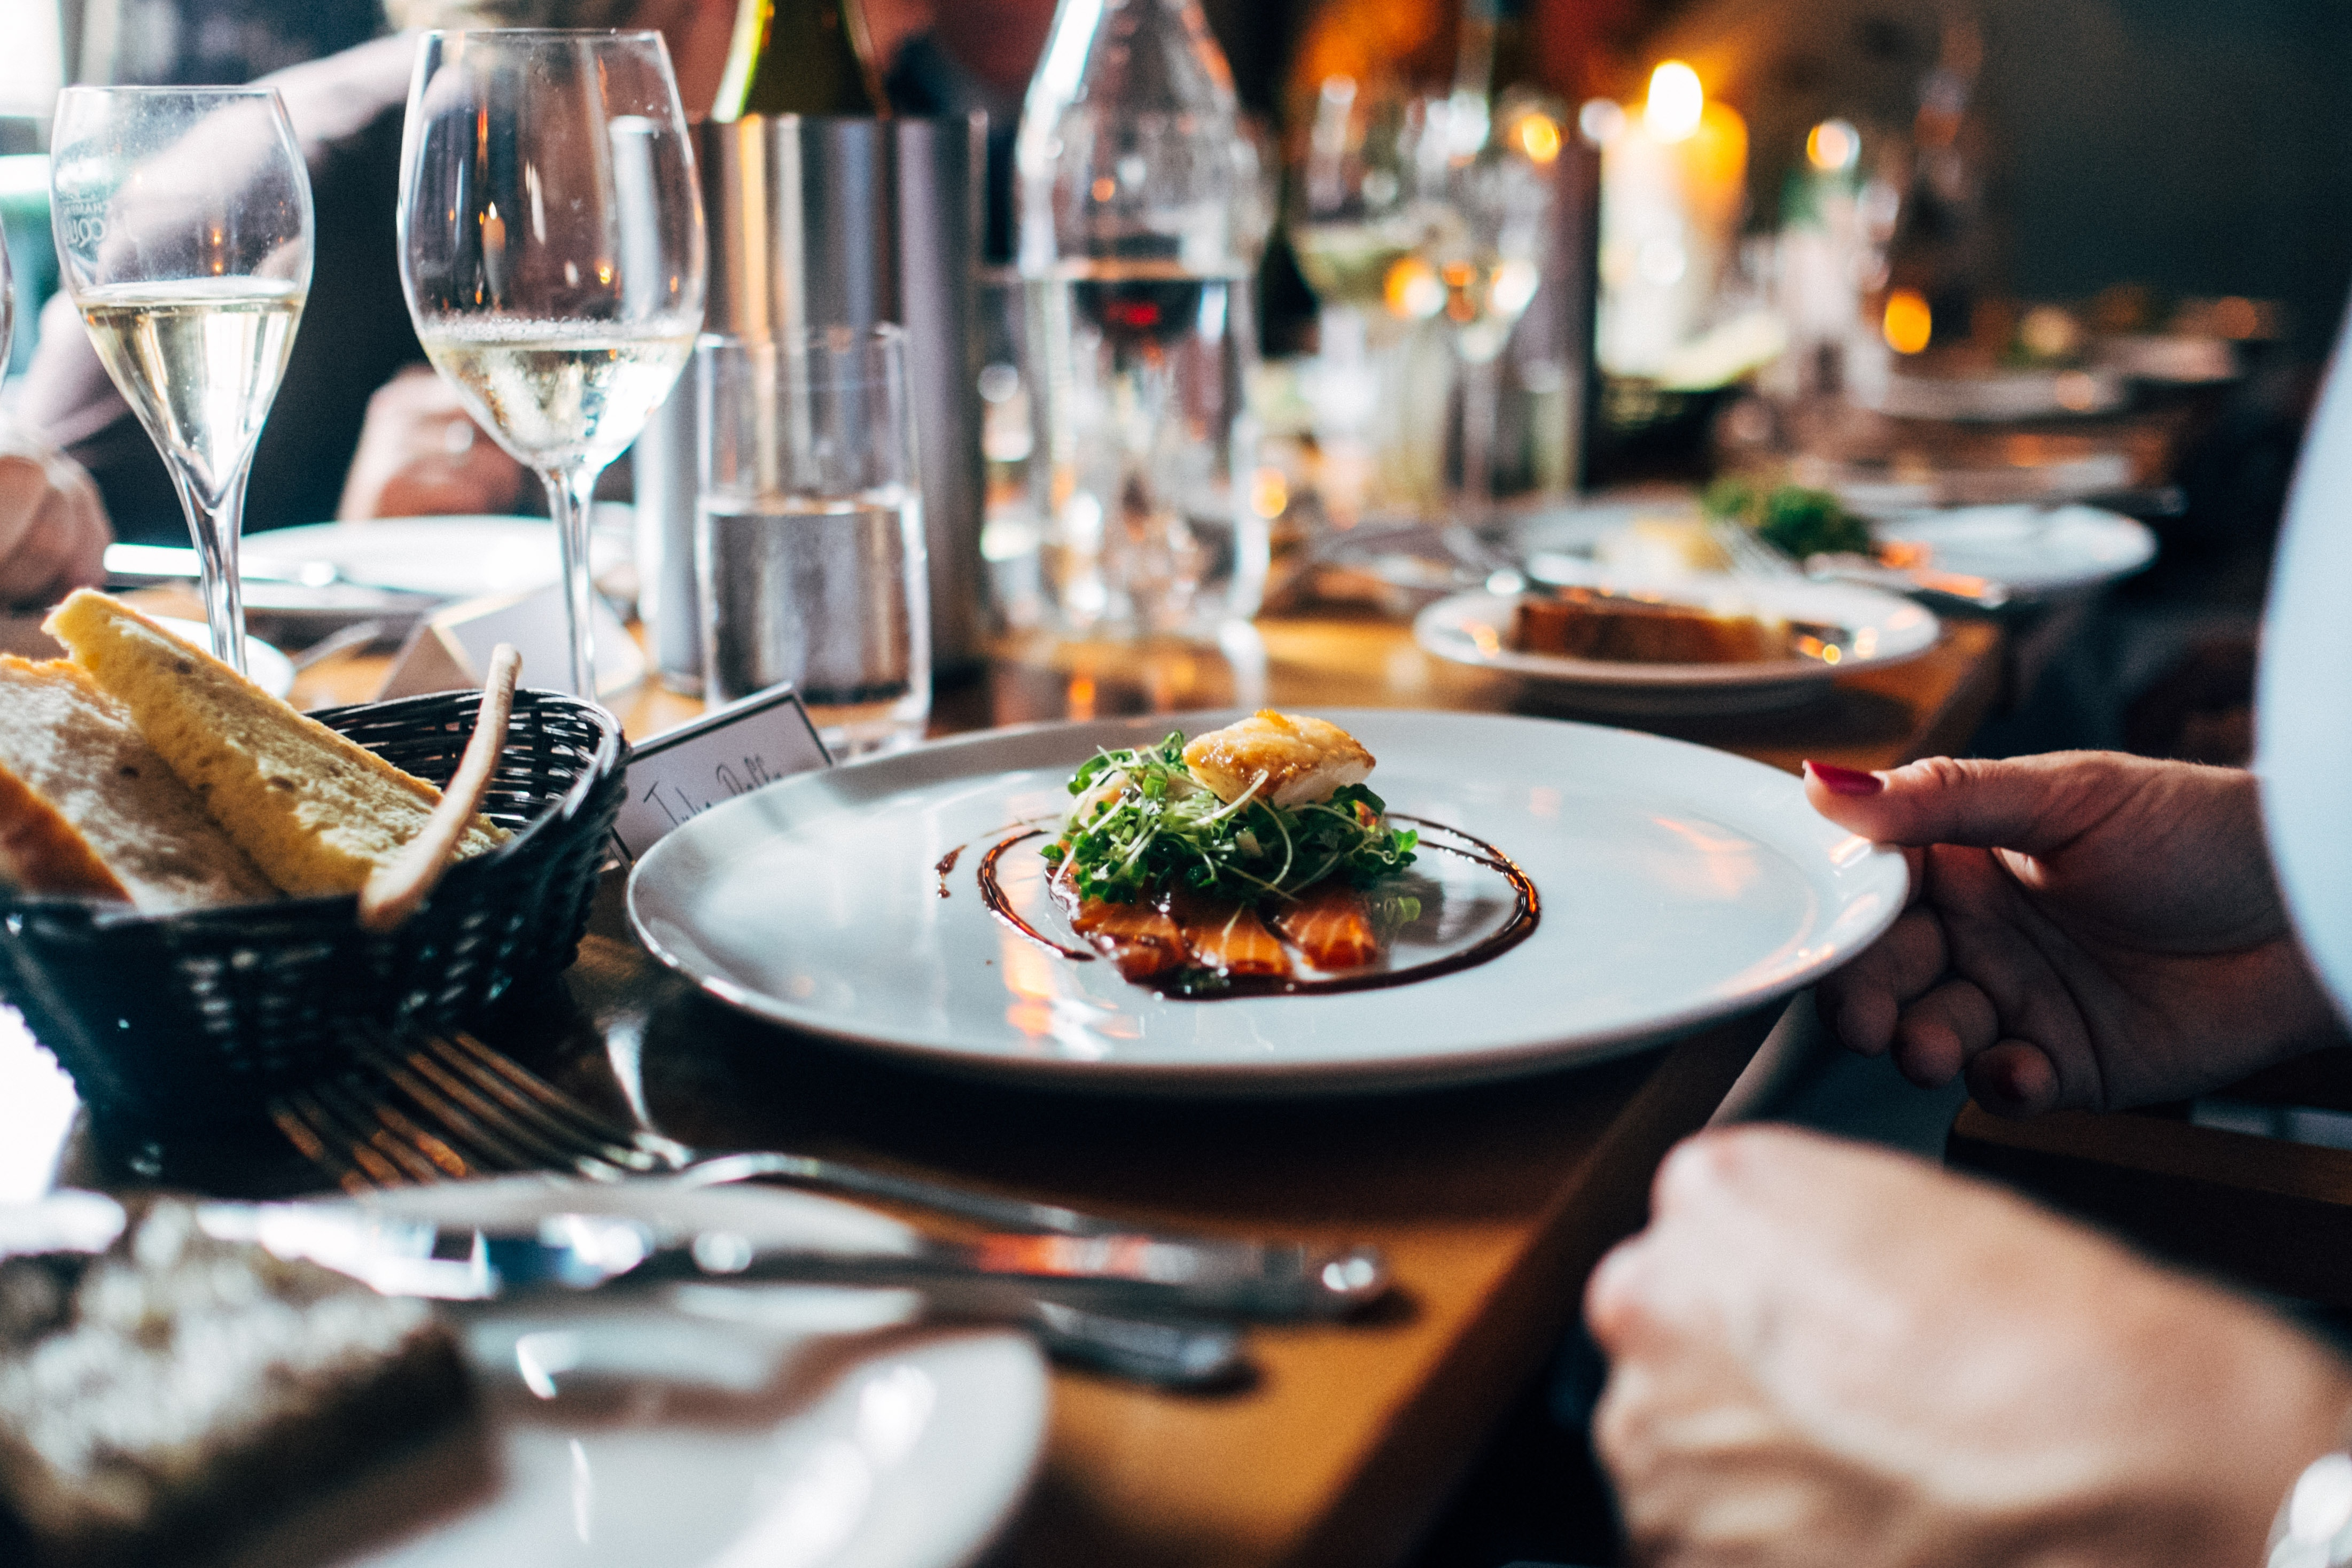 Dining out can be a healthy affair. Here's how